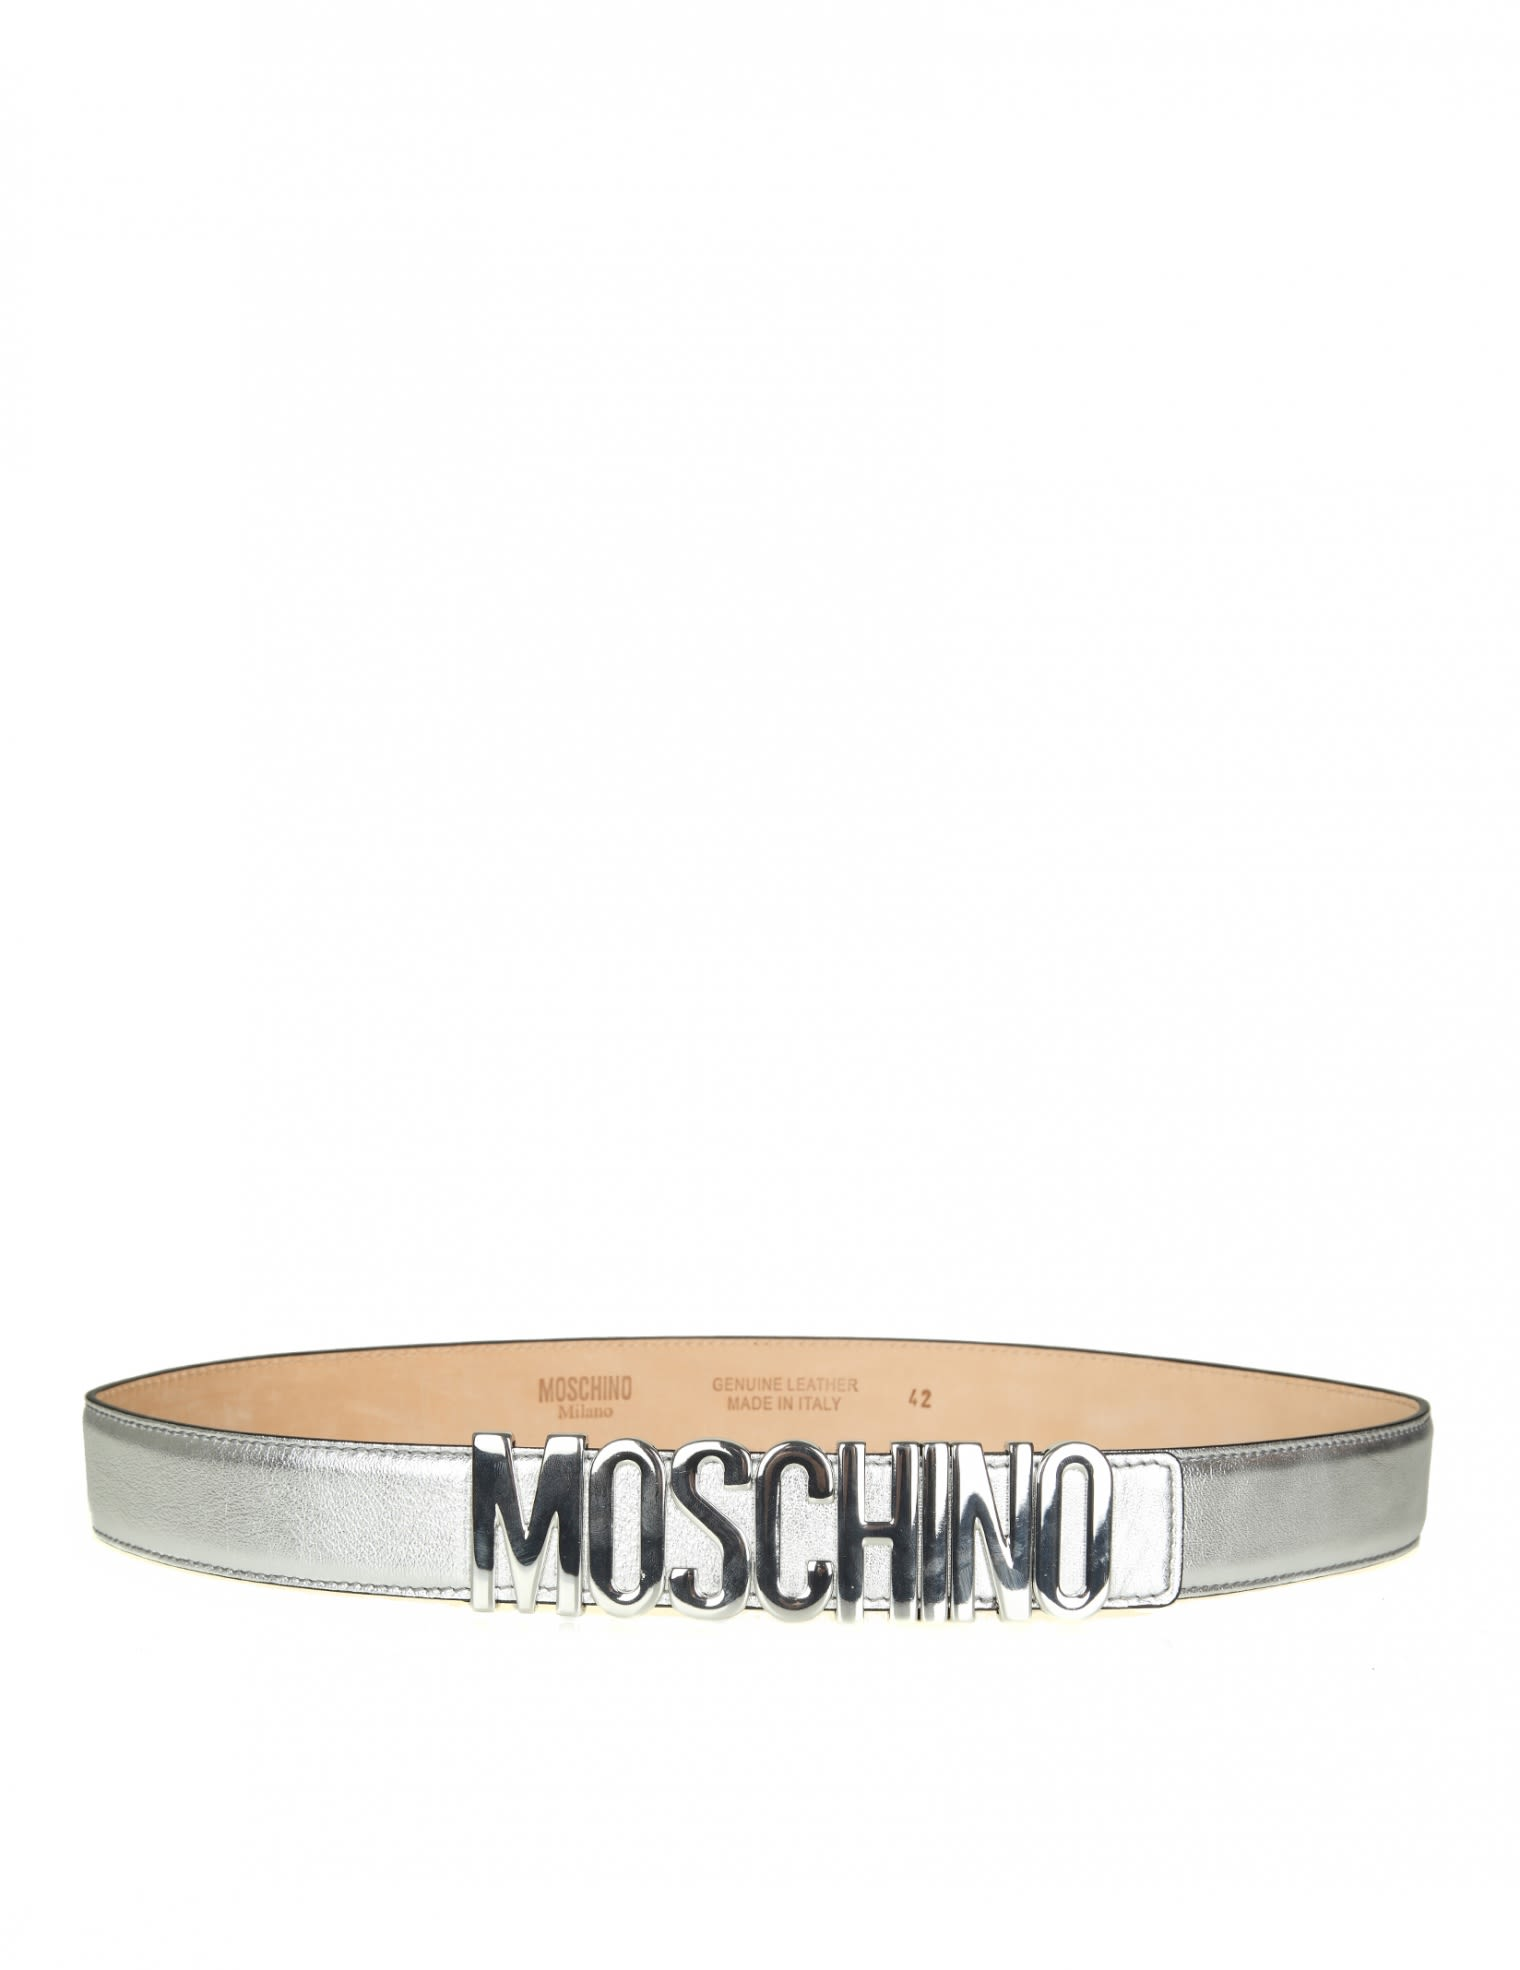 MOSCHINO BELT IN LAMINATED LEATHER COLOR SILVER WITH LOGO